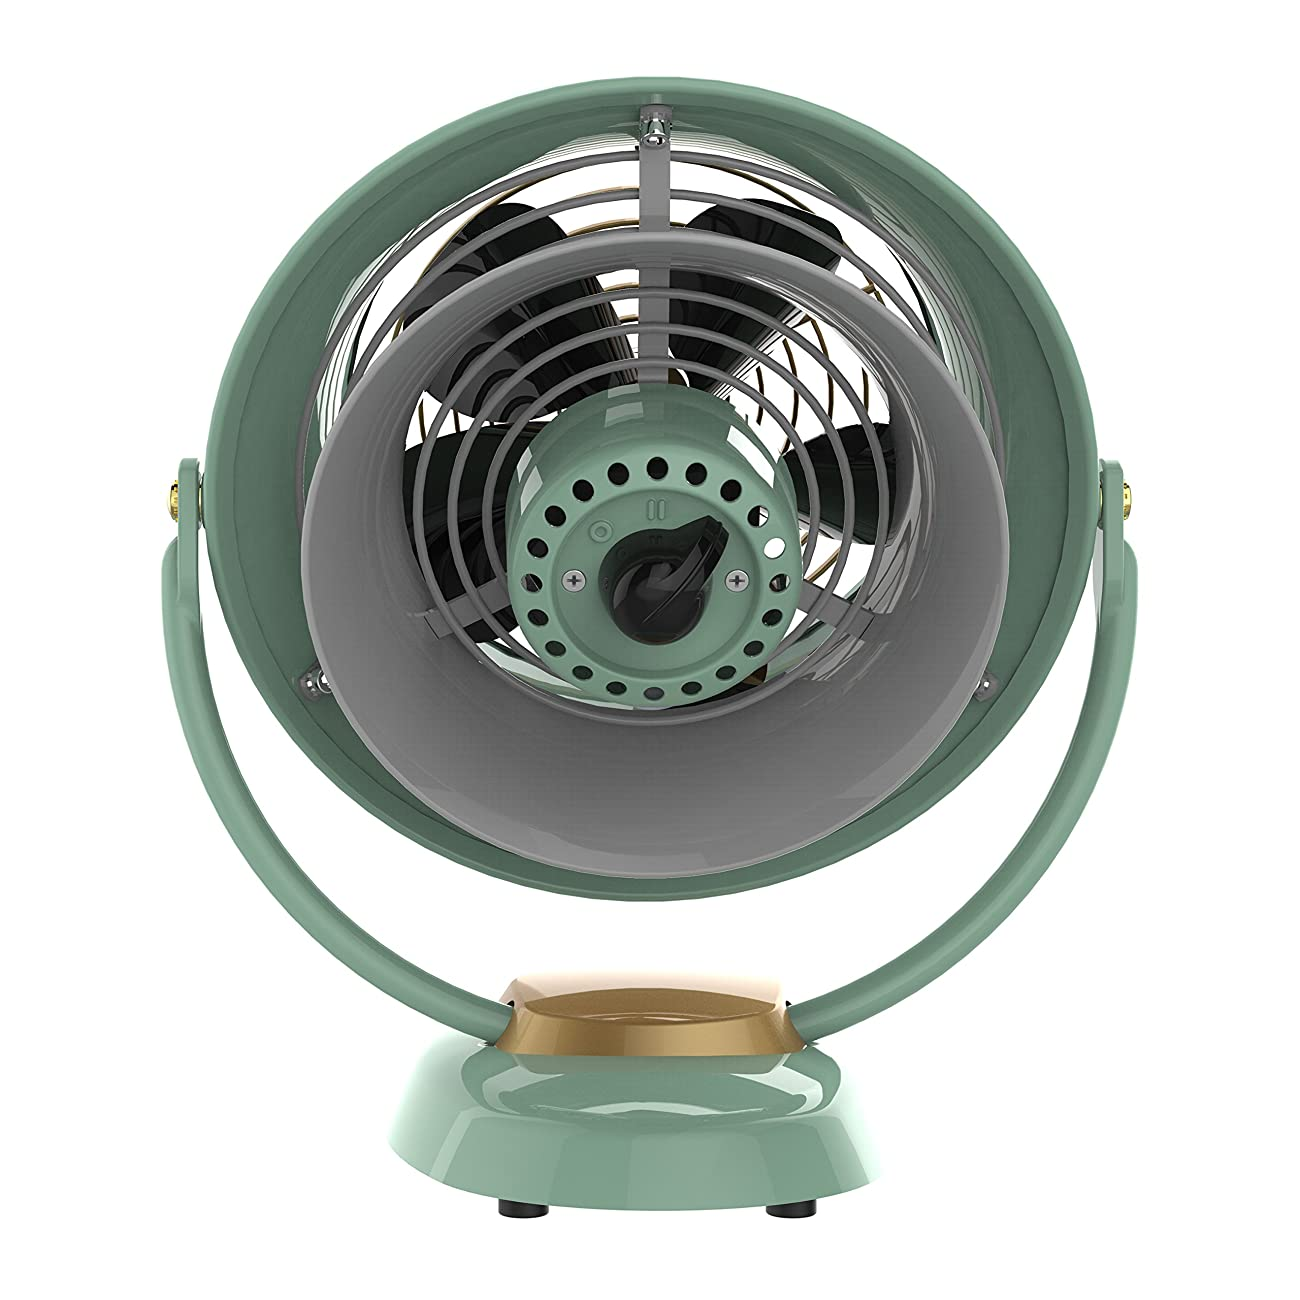 Vornado VFAN Jr. Vintage Air Circulator, Green 3